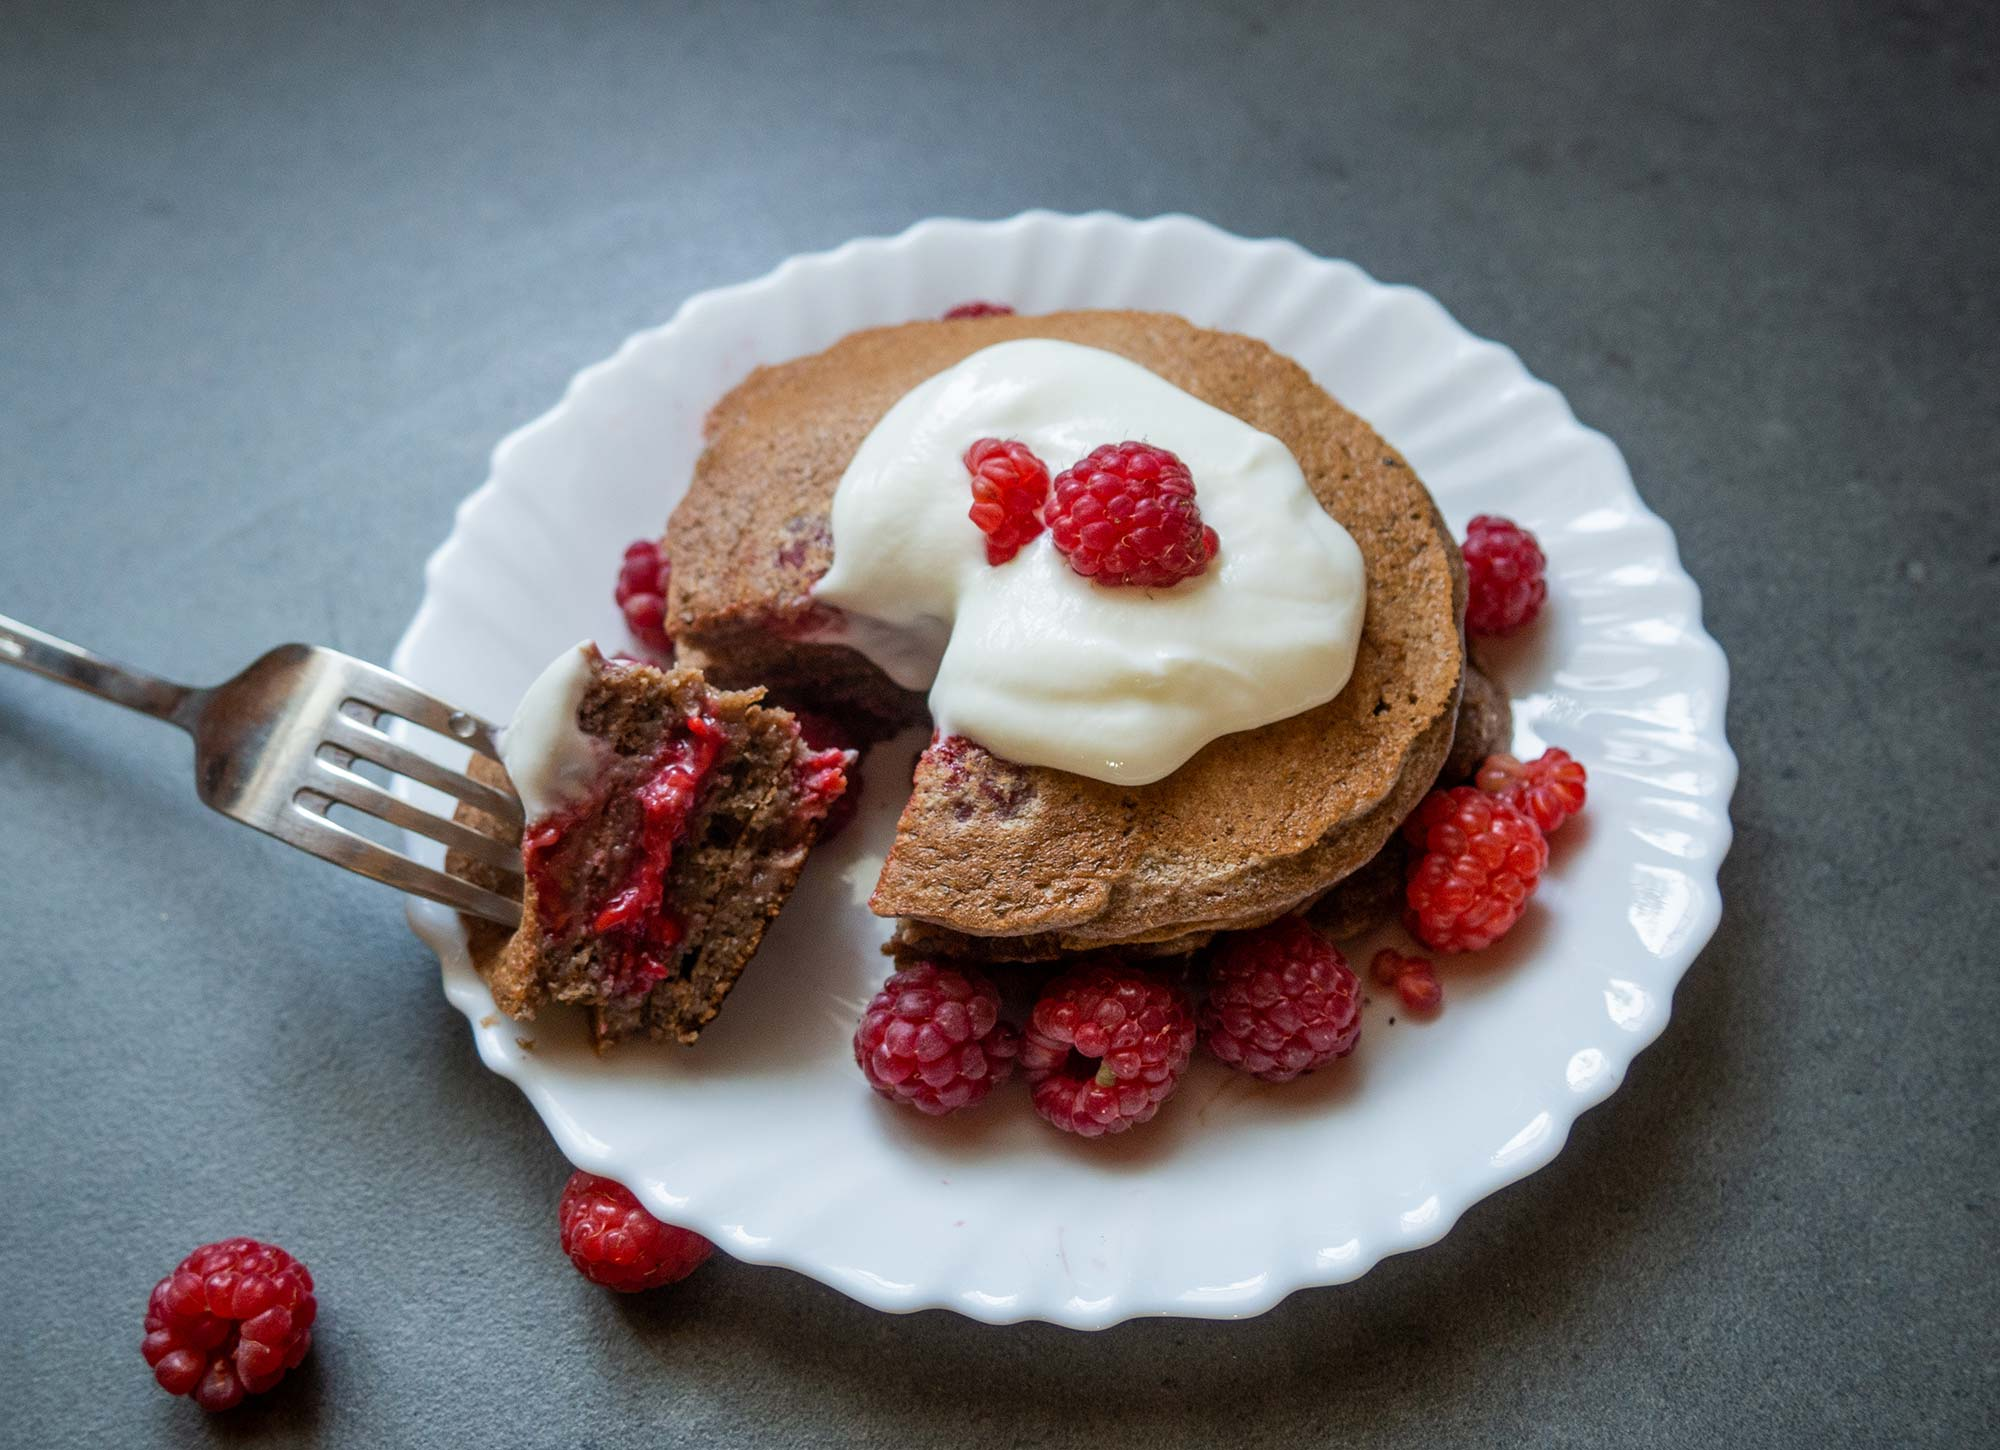 Chocolate pancakes with raspberries ready to go